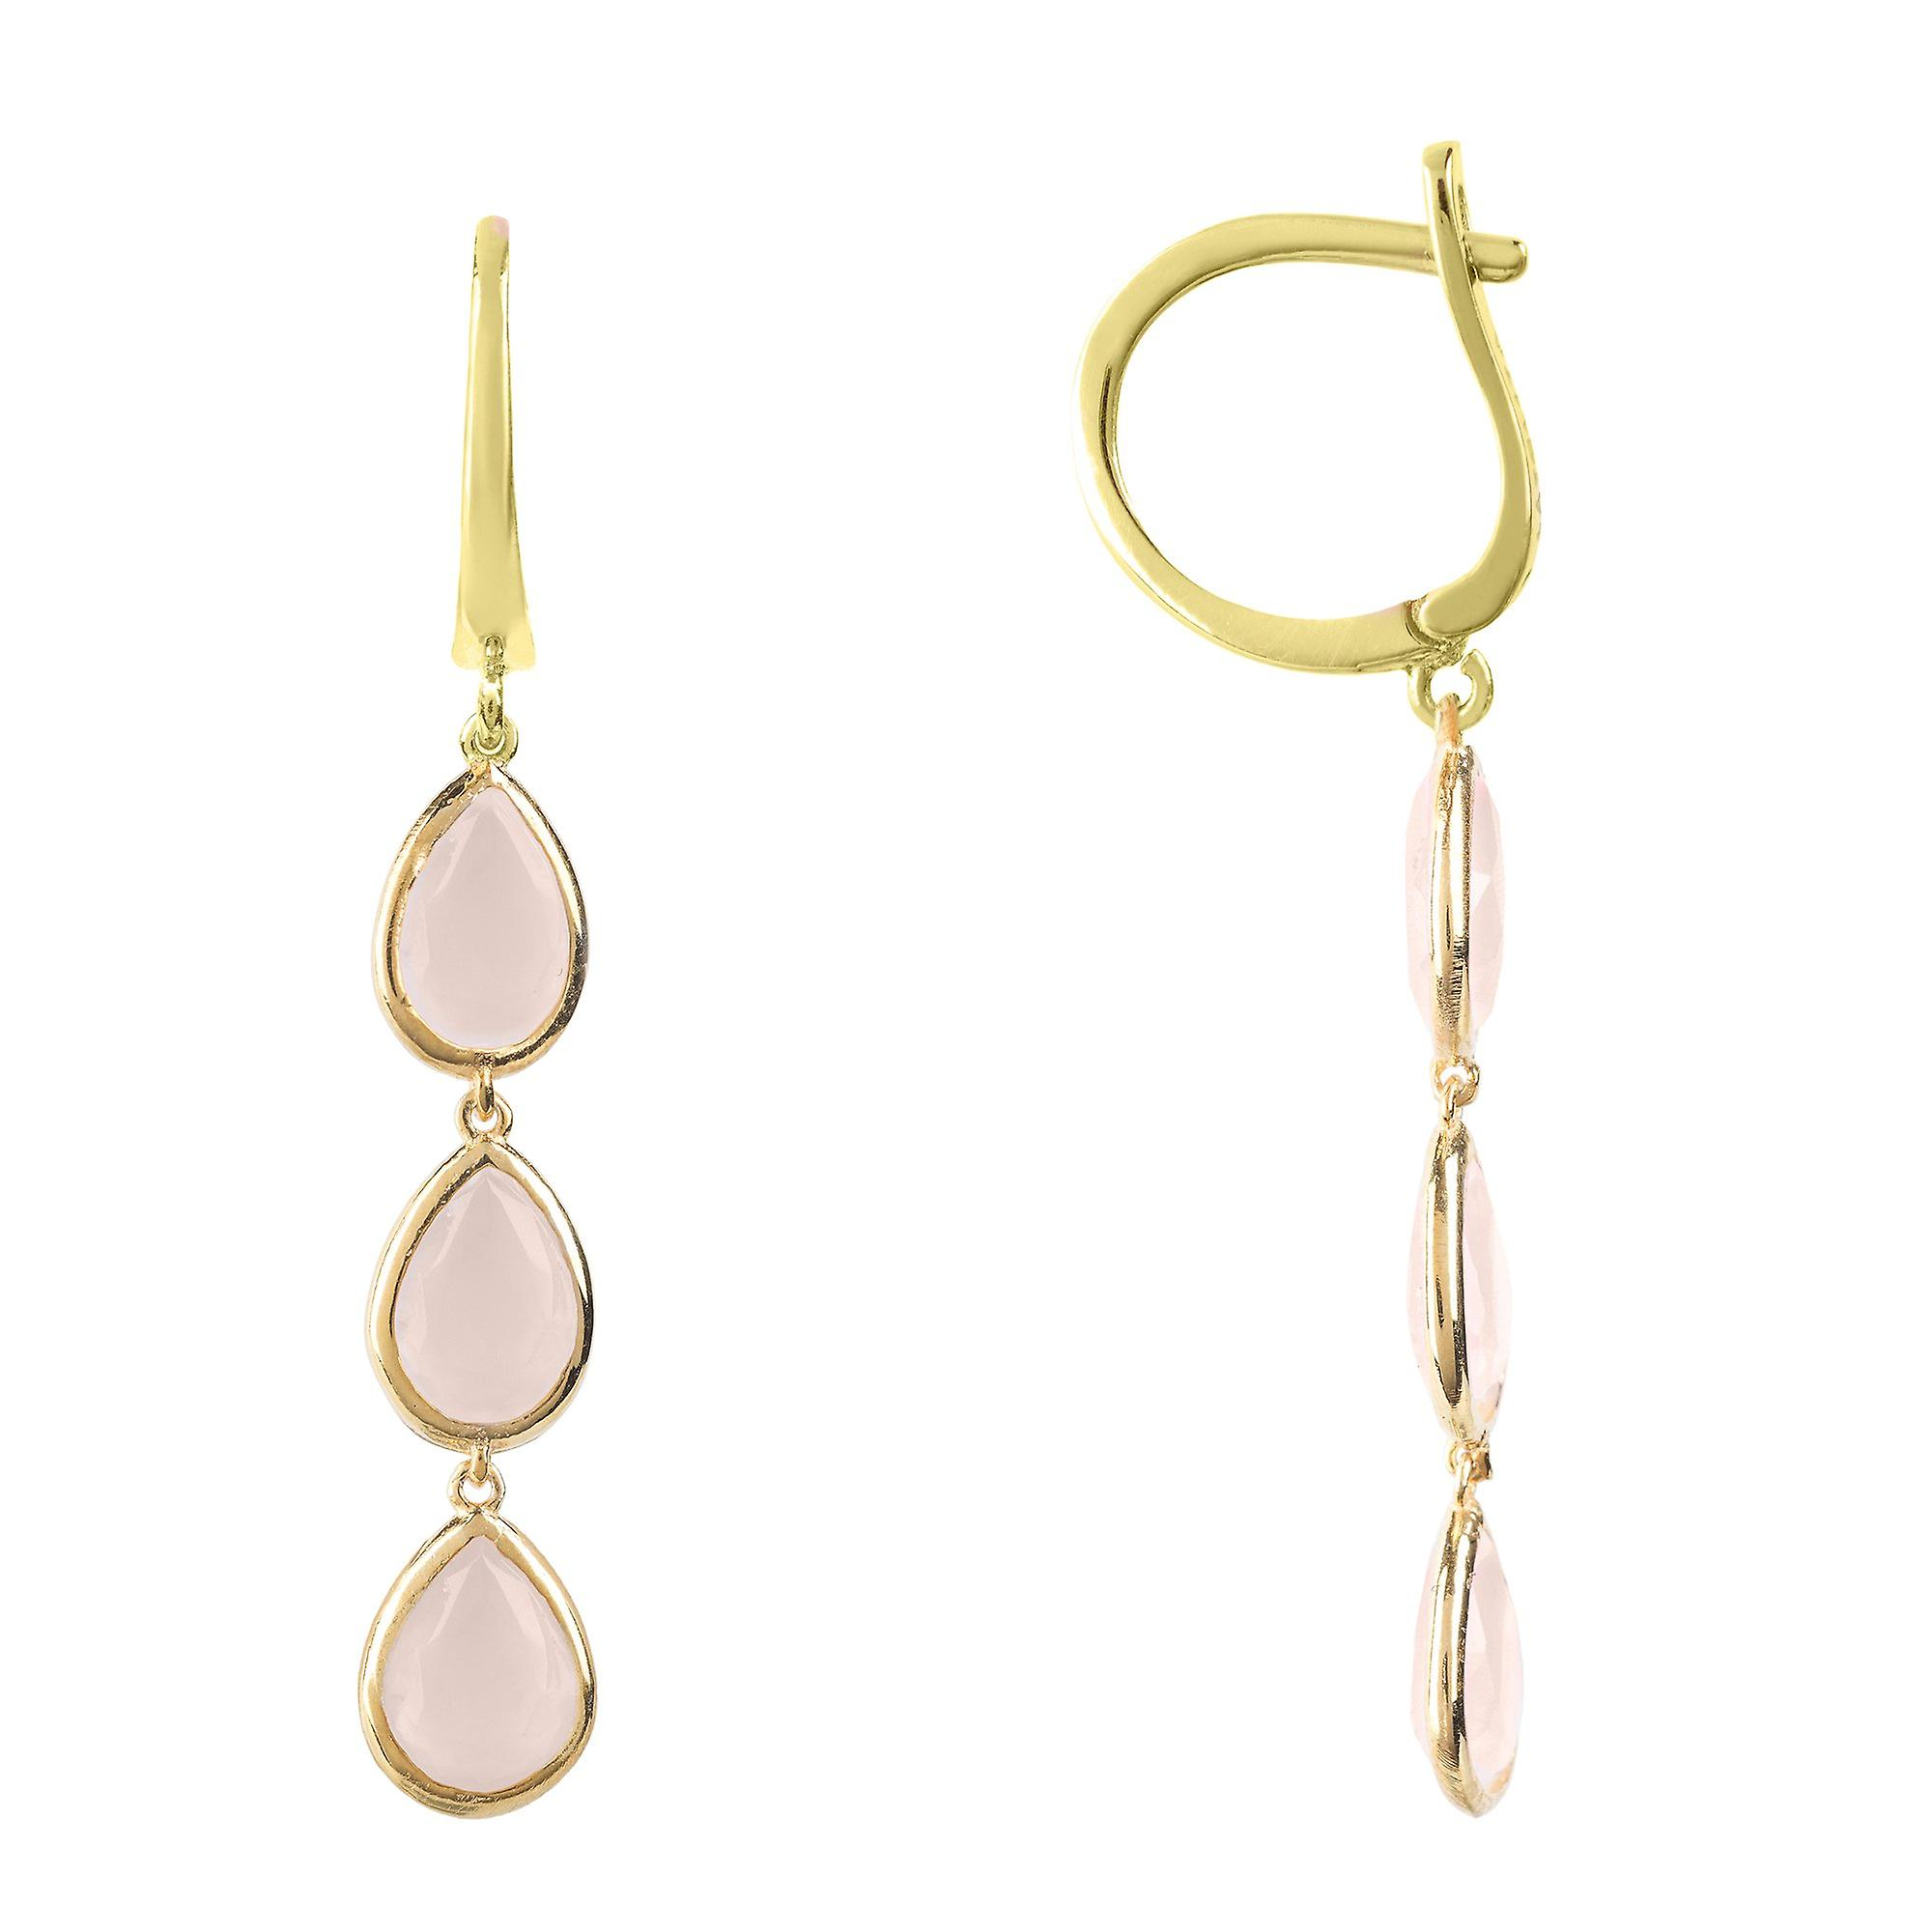 Latelita Earrings Gold Dangle Drop Multi Gemstone Pink Rose Quartz Jewellery